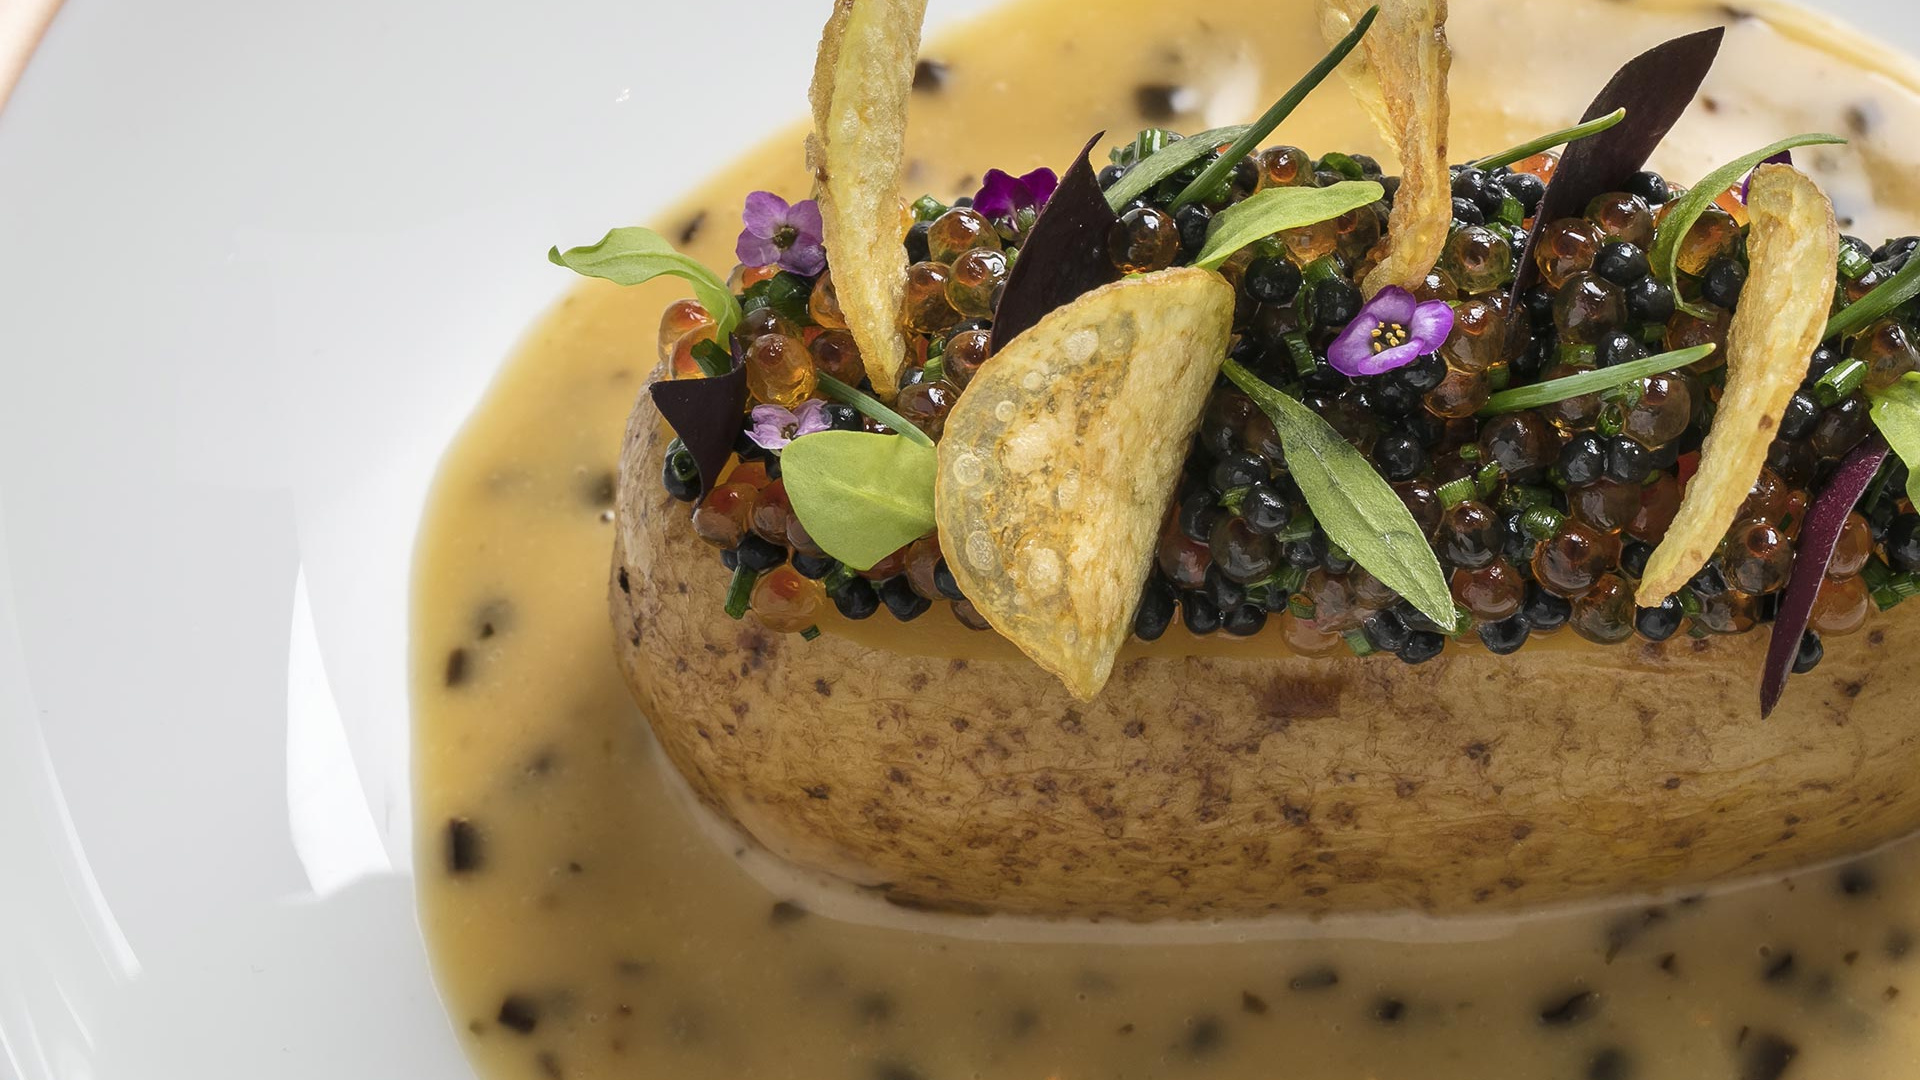 A dish from Core, Clare Smyth's new restaurant